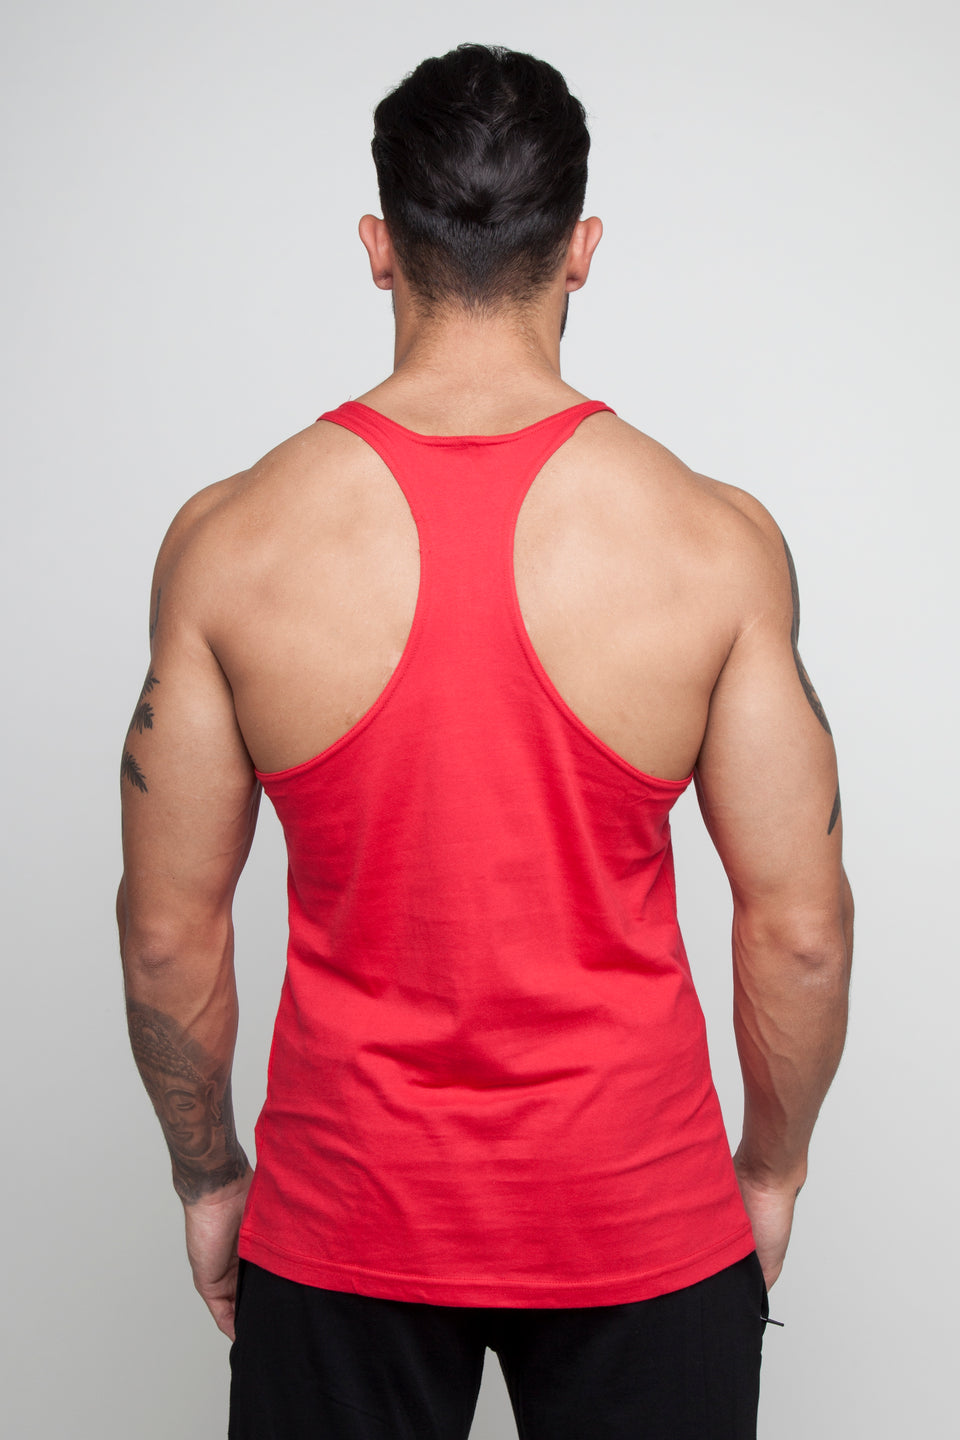 Vypex® Branded Emblem Stringer Vest - Infernal Red